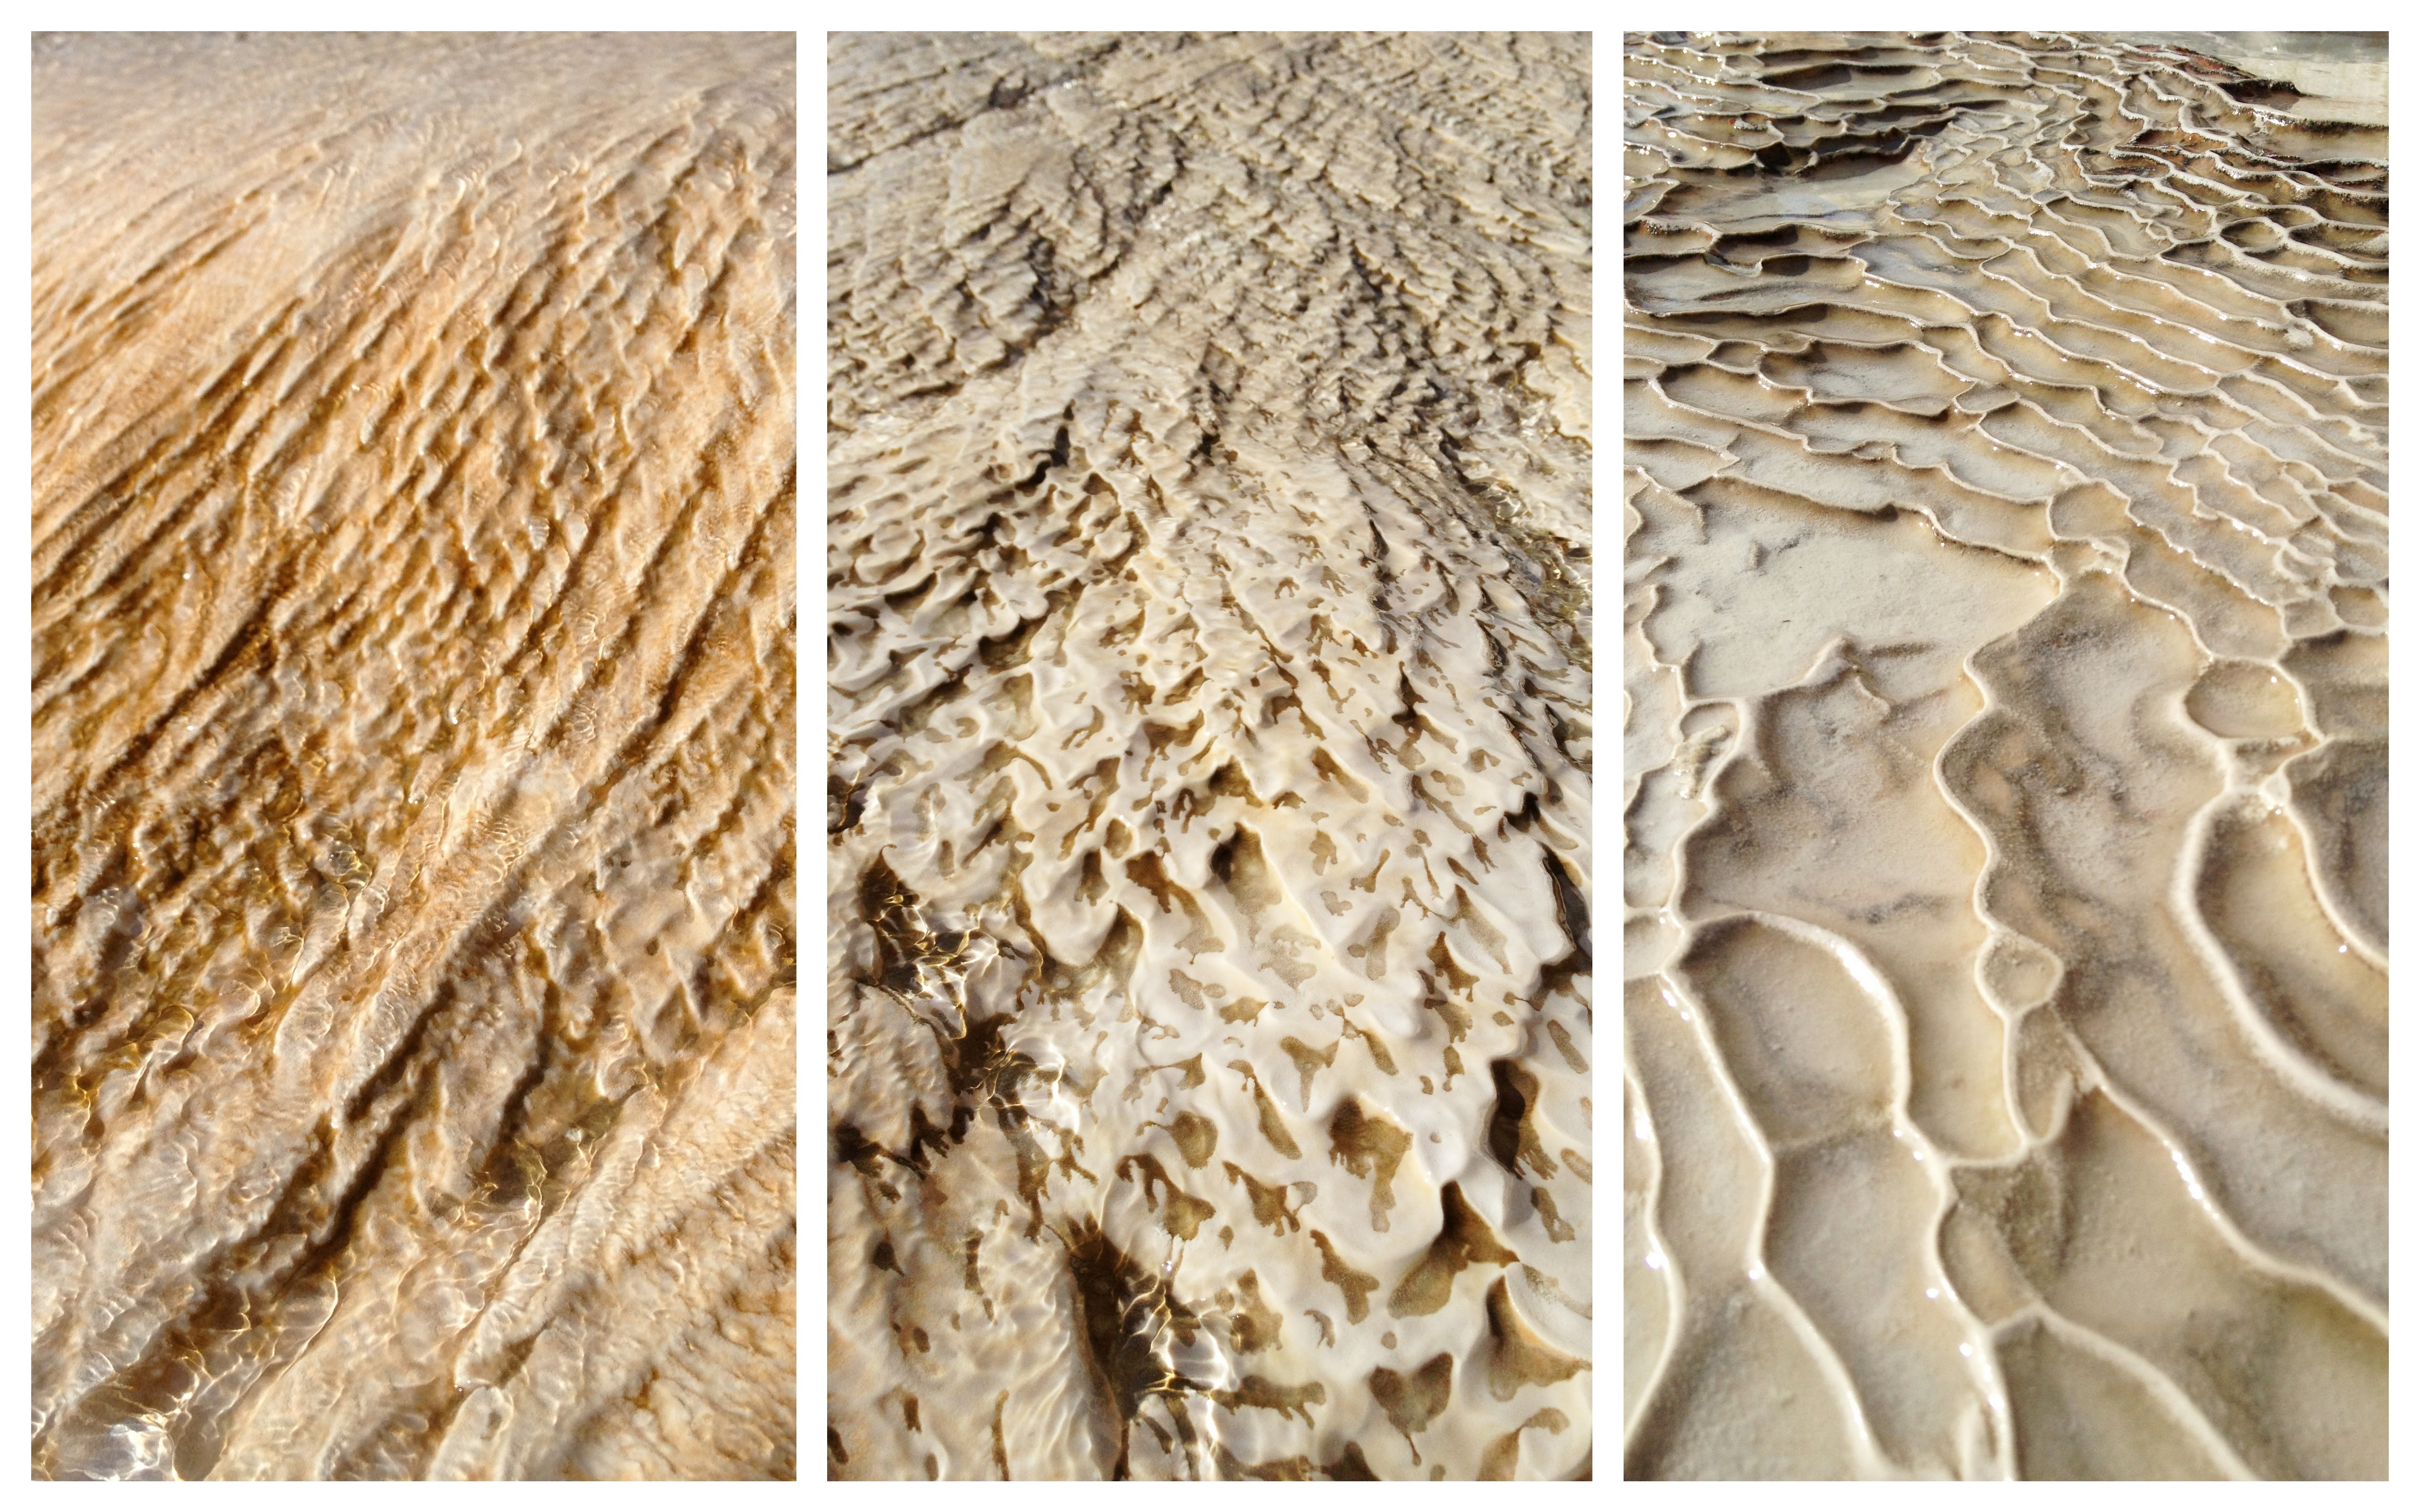 The different fascinating shapes of mineral deposits left behind